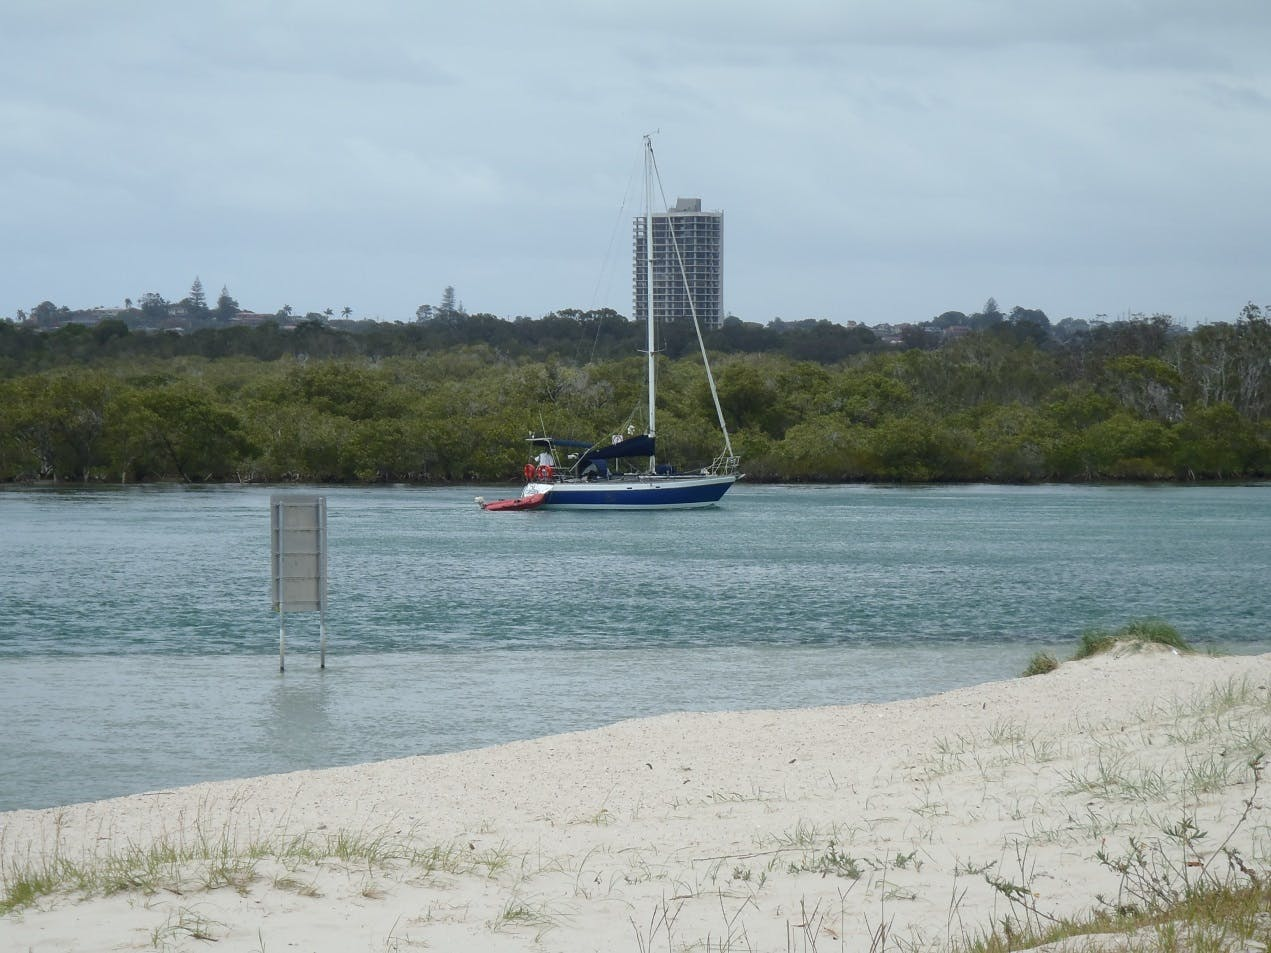 Boating is an important pastime for many people in the Tweed River Estuary